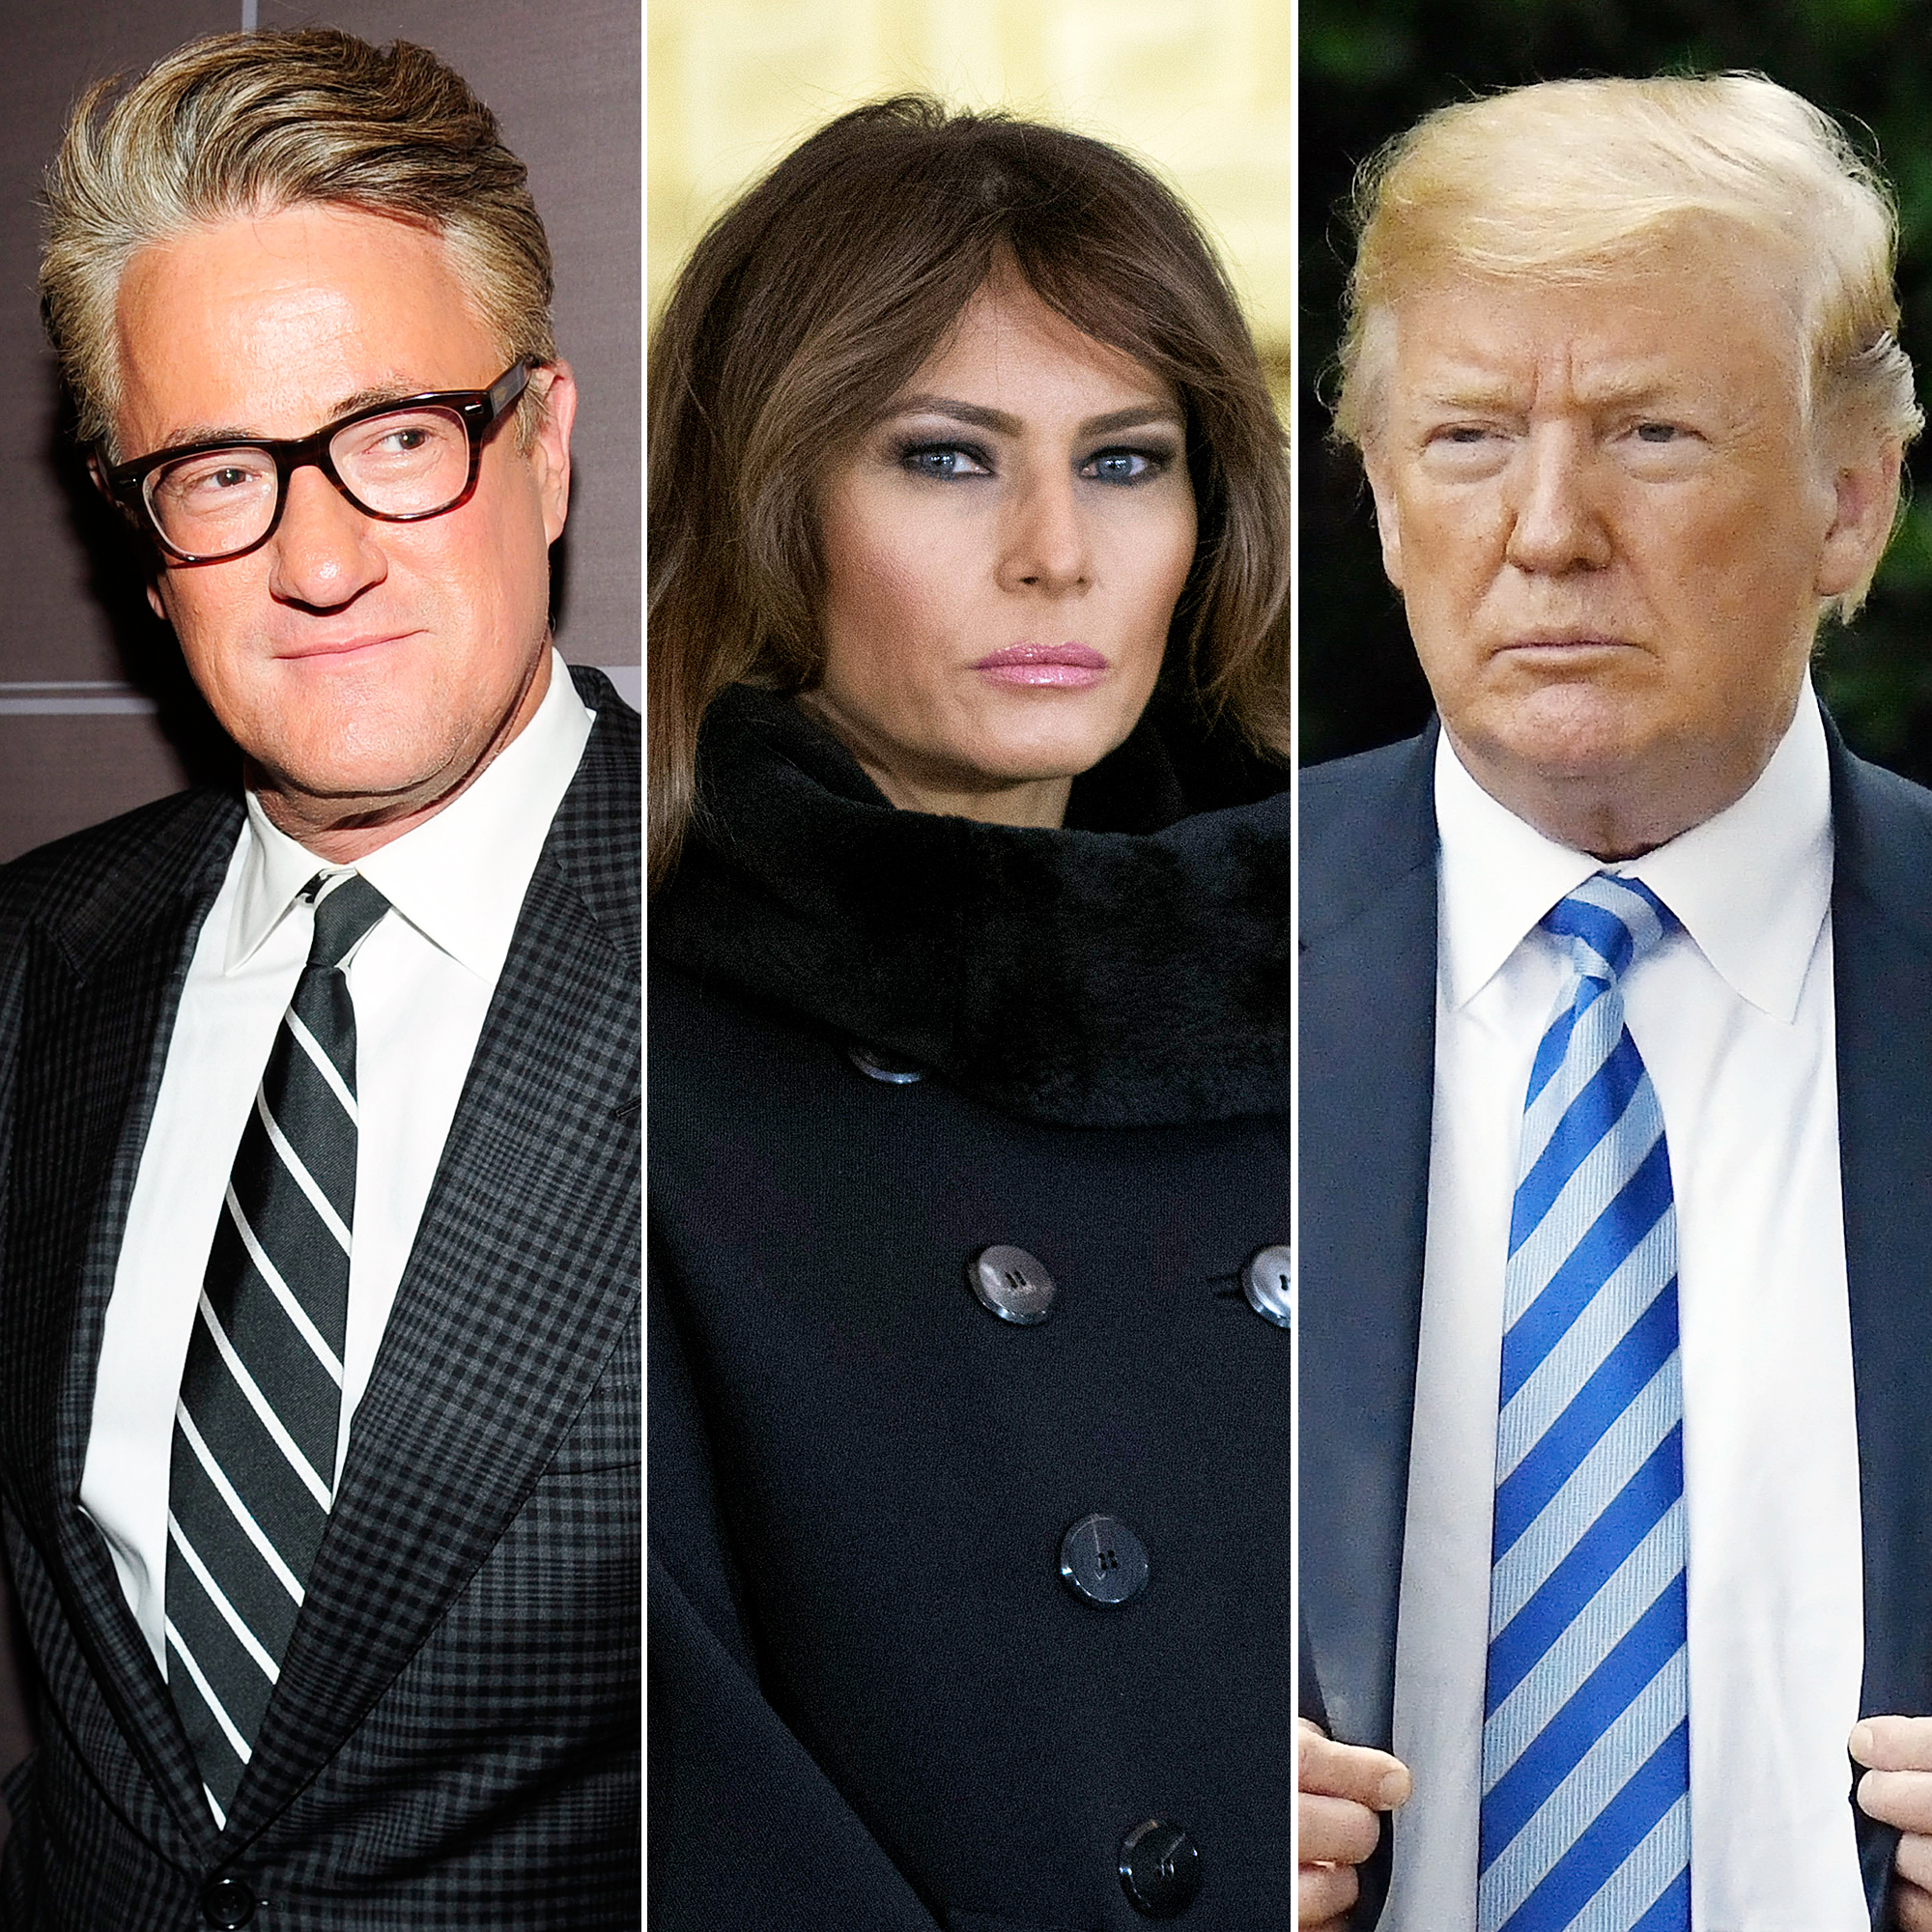 Joe Scarborough Hits Back at Donald Trump Over Melania Tweet